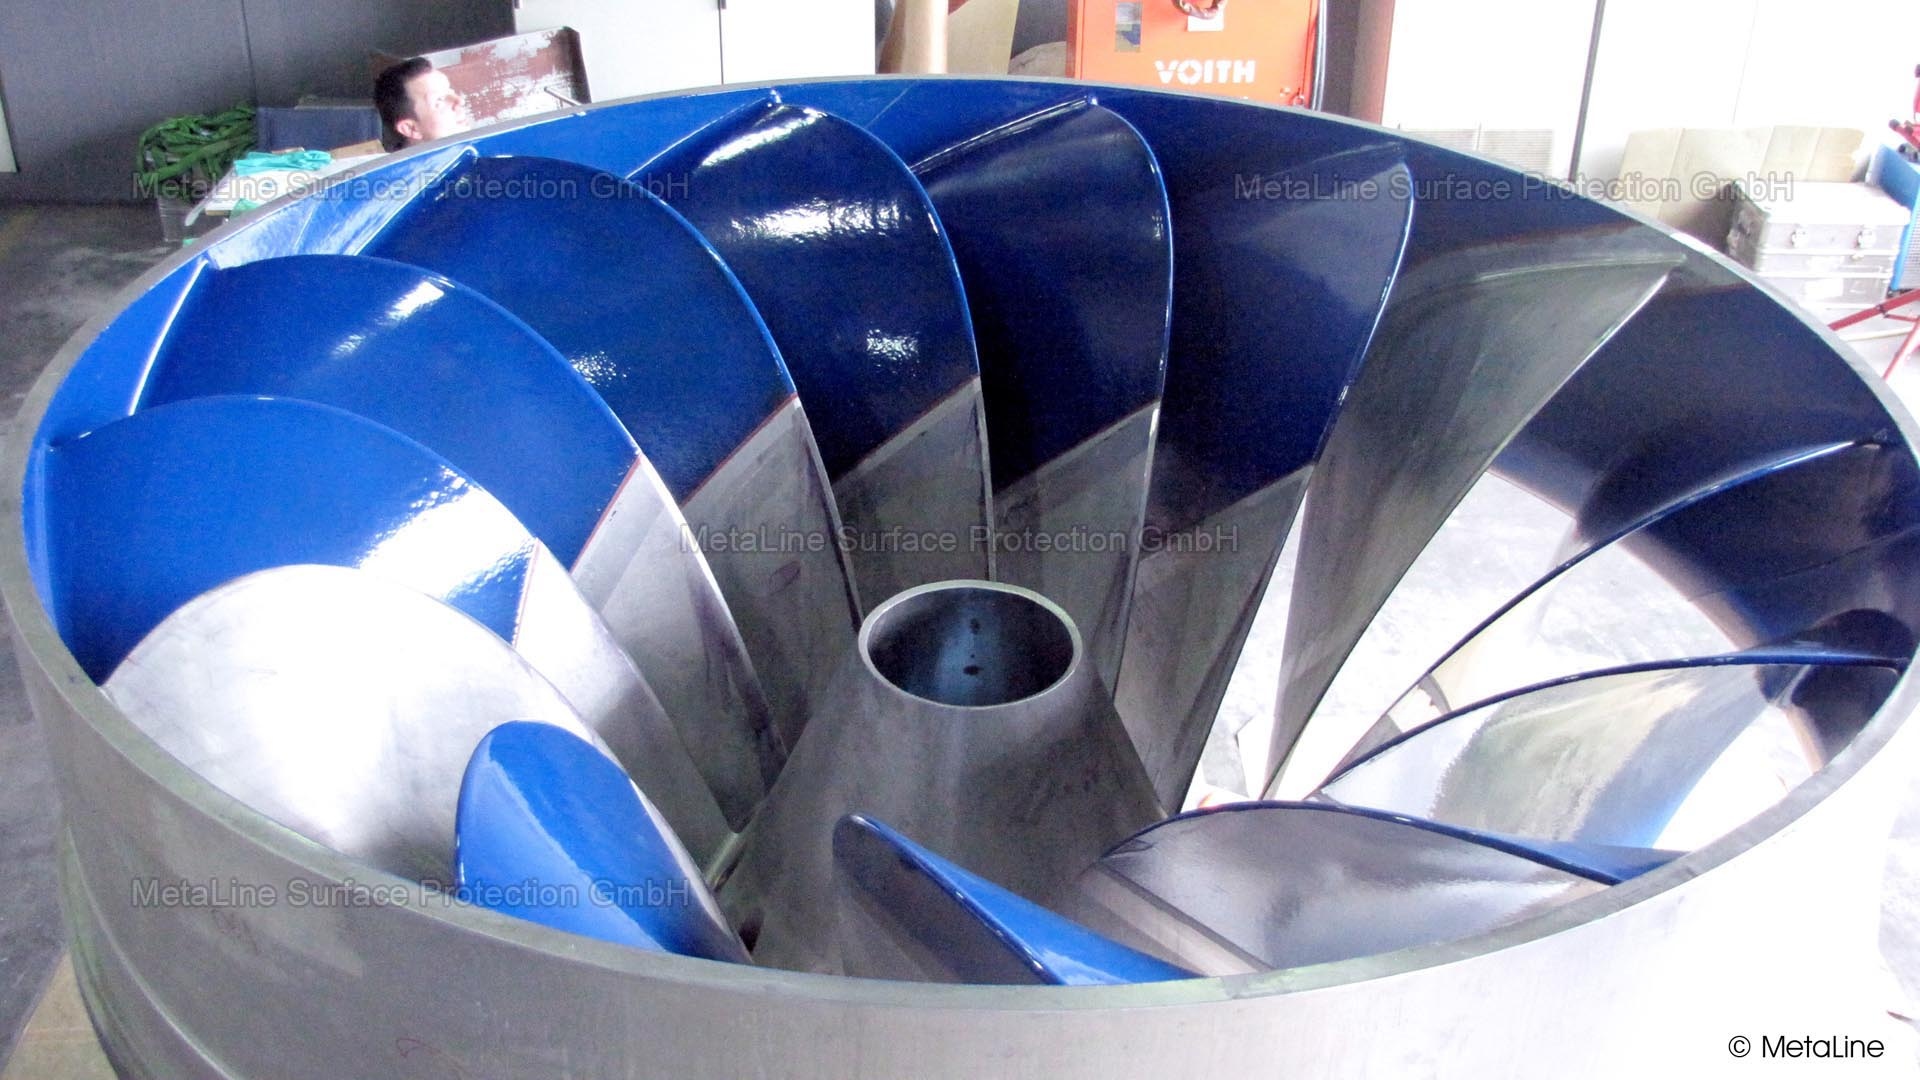 <!-- START: ConditionalContent --><!-- END: ConditionalContent -->   <!-- START: ConditionalContent --> Impeller; Turbine; Kaplan; Francis; Wear; Erosion; Corrosion; Cavitation; Repair; Wear-resistant; Coating; Ceramic; Guide Blade; Guide vane; Wear-resistant;  <!-- END: ConditionalContent -->   <!-- START: ConditionalContent --><!-- END: ConditionalContent -->   <!-- START: ConditionalContent --><!-- END: ConditionalContent -->